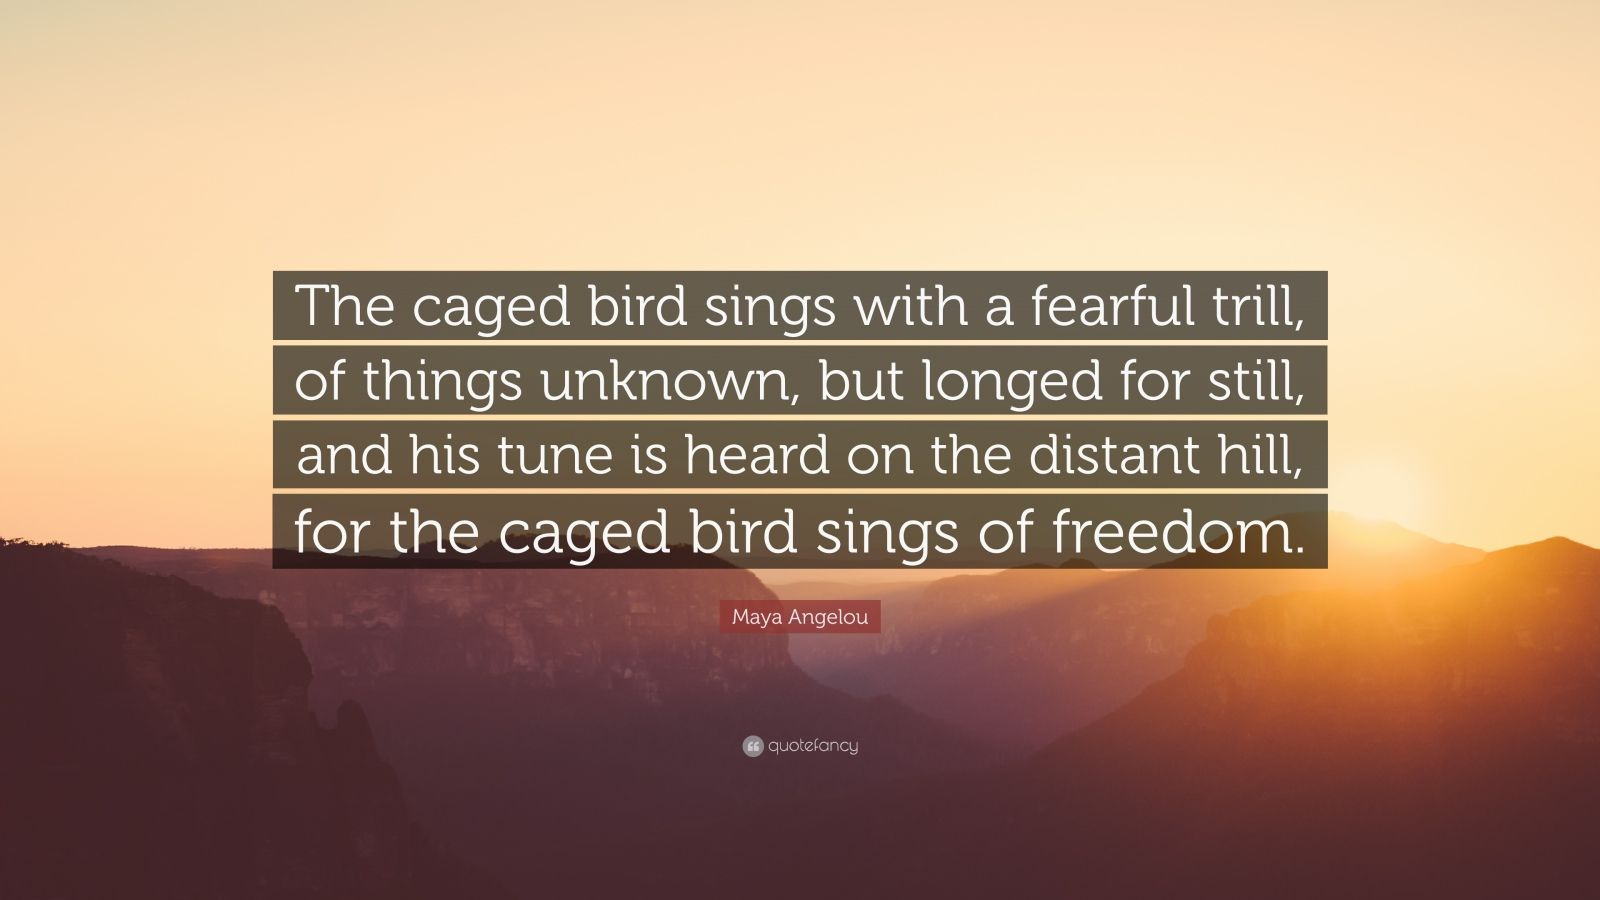 "Maya Angelou Quote: ""The caged bird sings with a fearful trill, of things unknown, but longed for still, and his tune is heard on the distant hill, for the caged bird sings of freedom."""